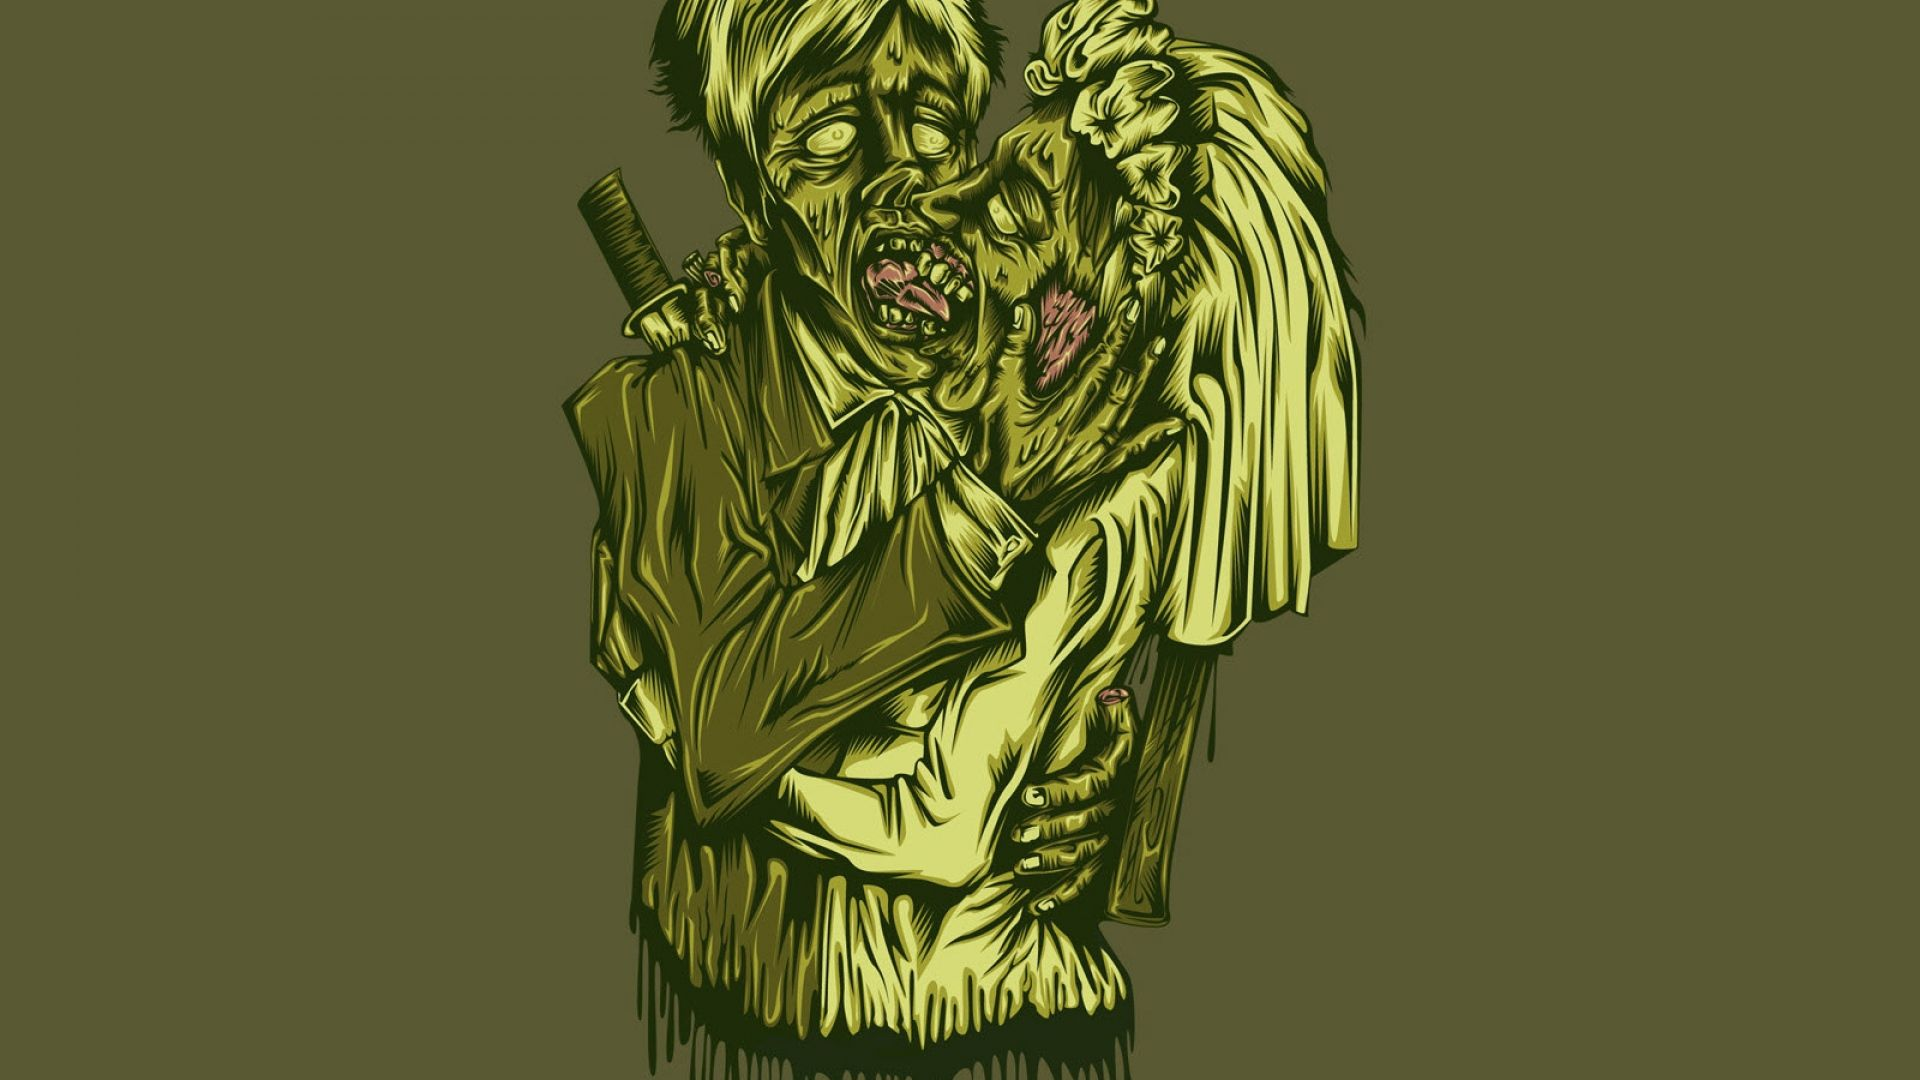 zombie, kiss, couple - http://www.wallpapers4u.org/zombie-kiss-couple/